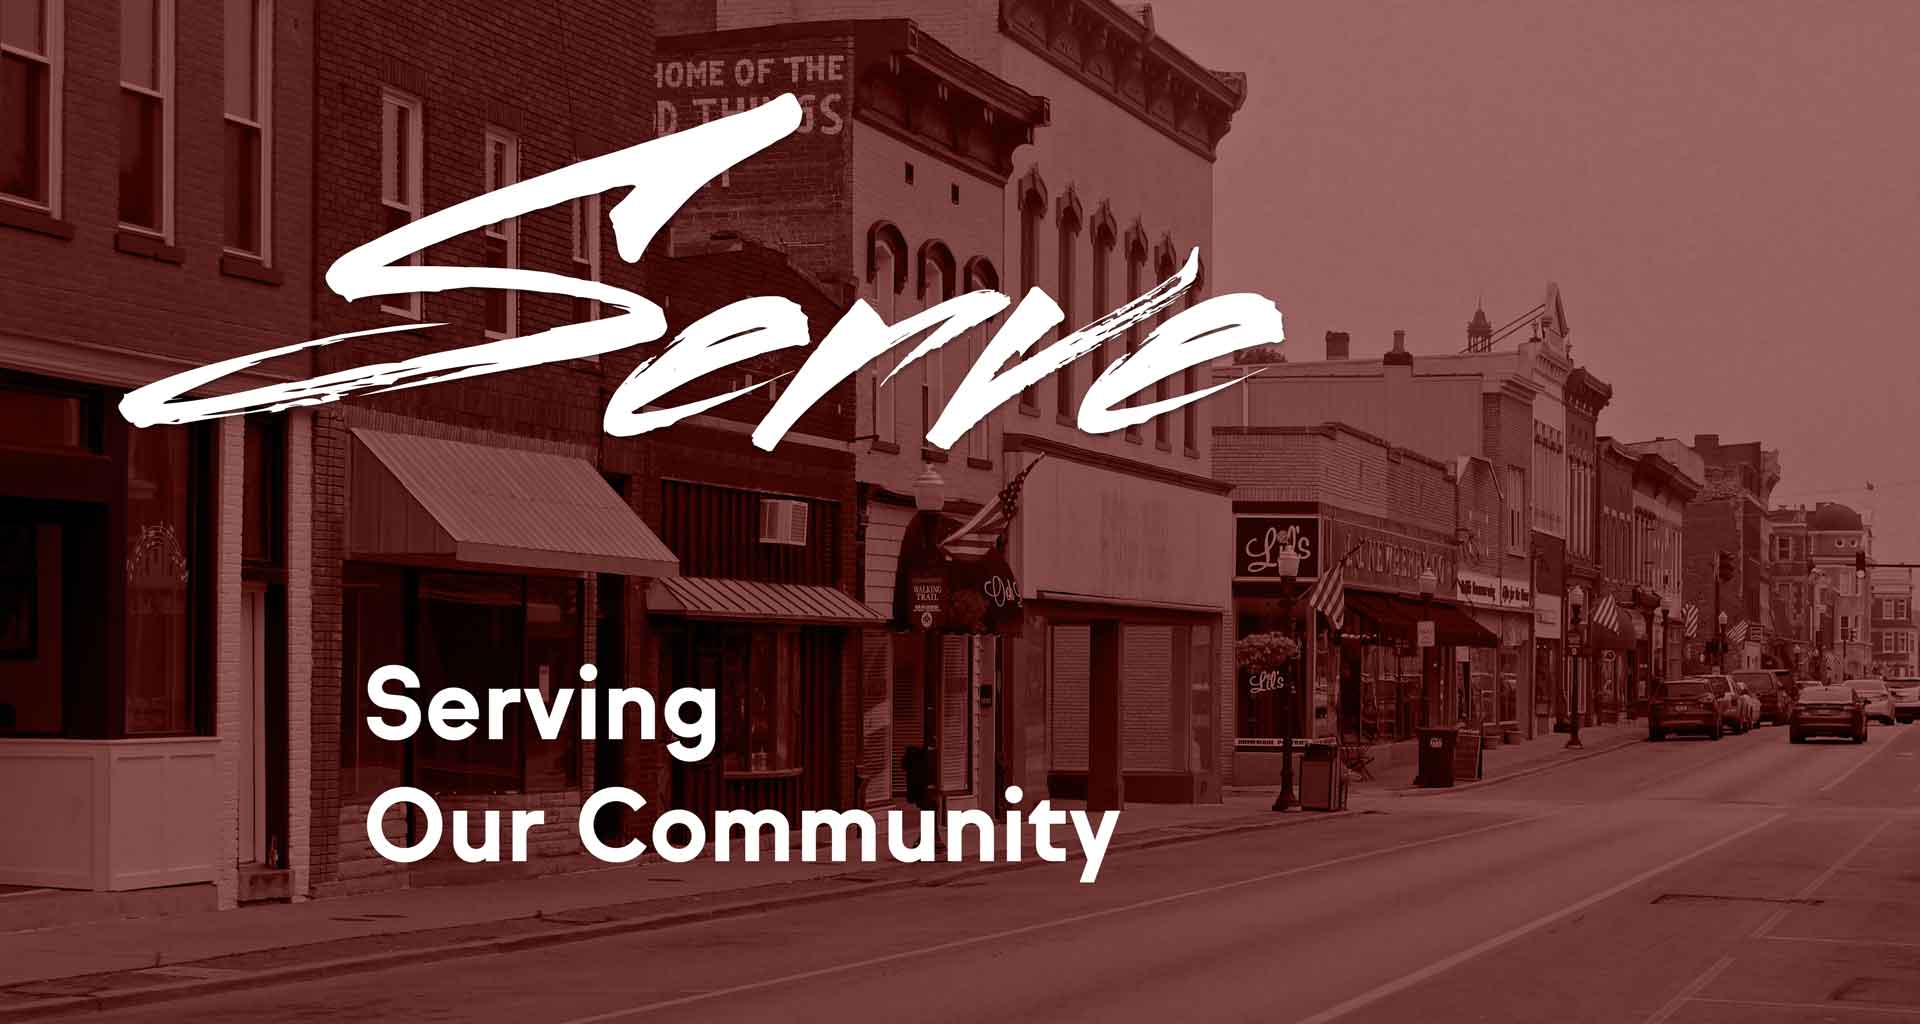 Serve: Serving Our Community